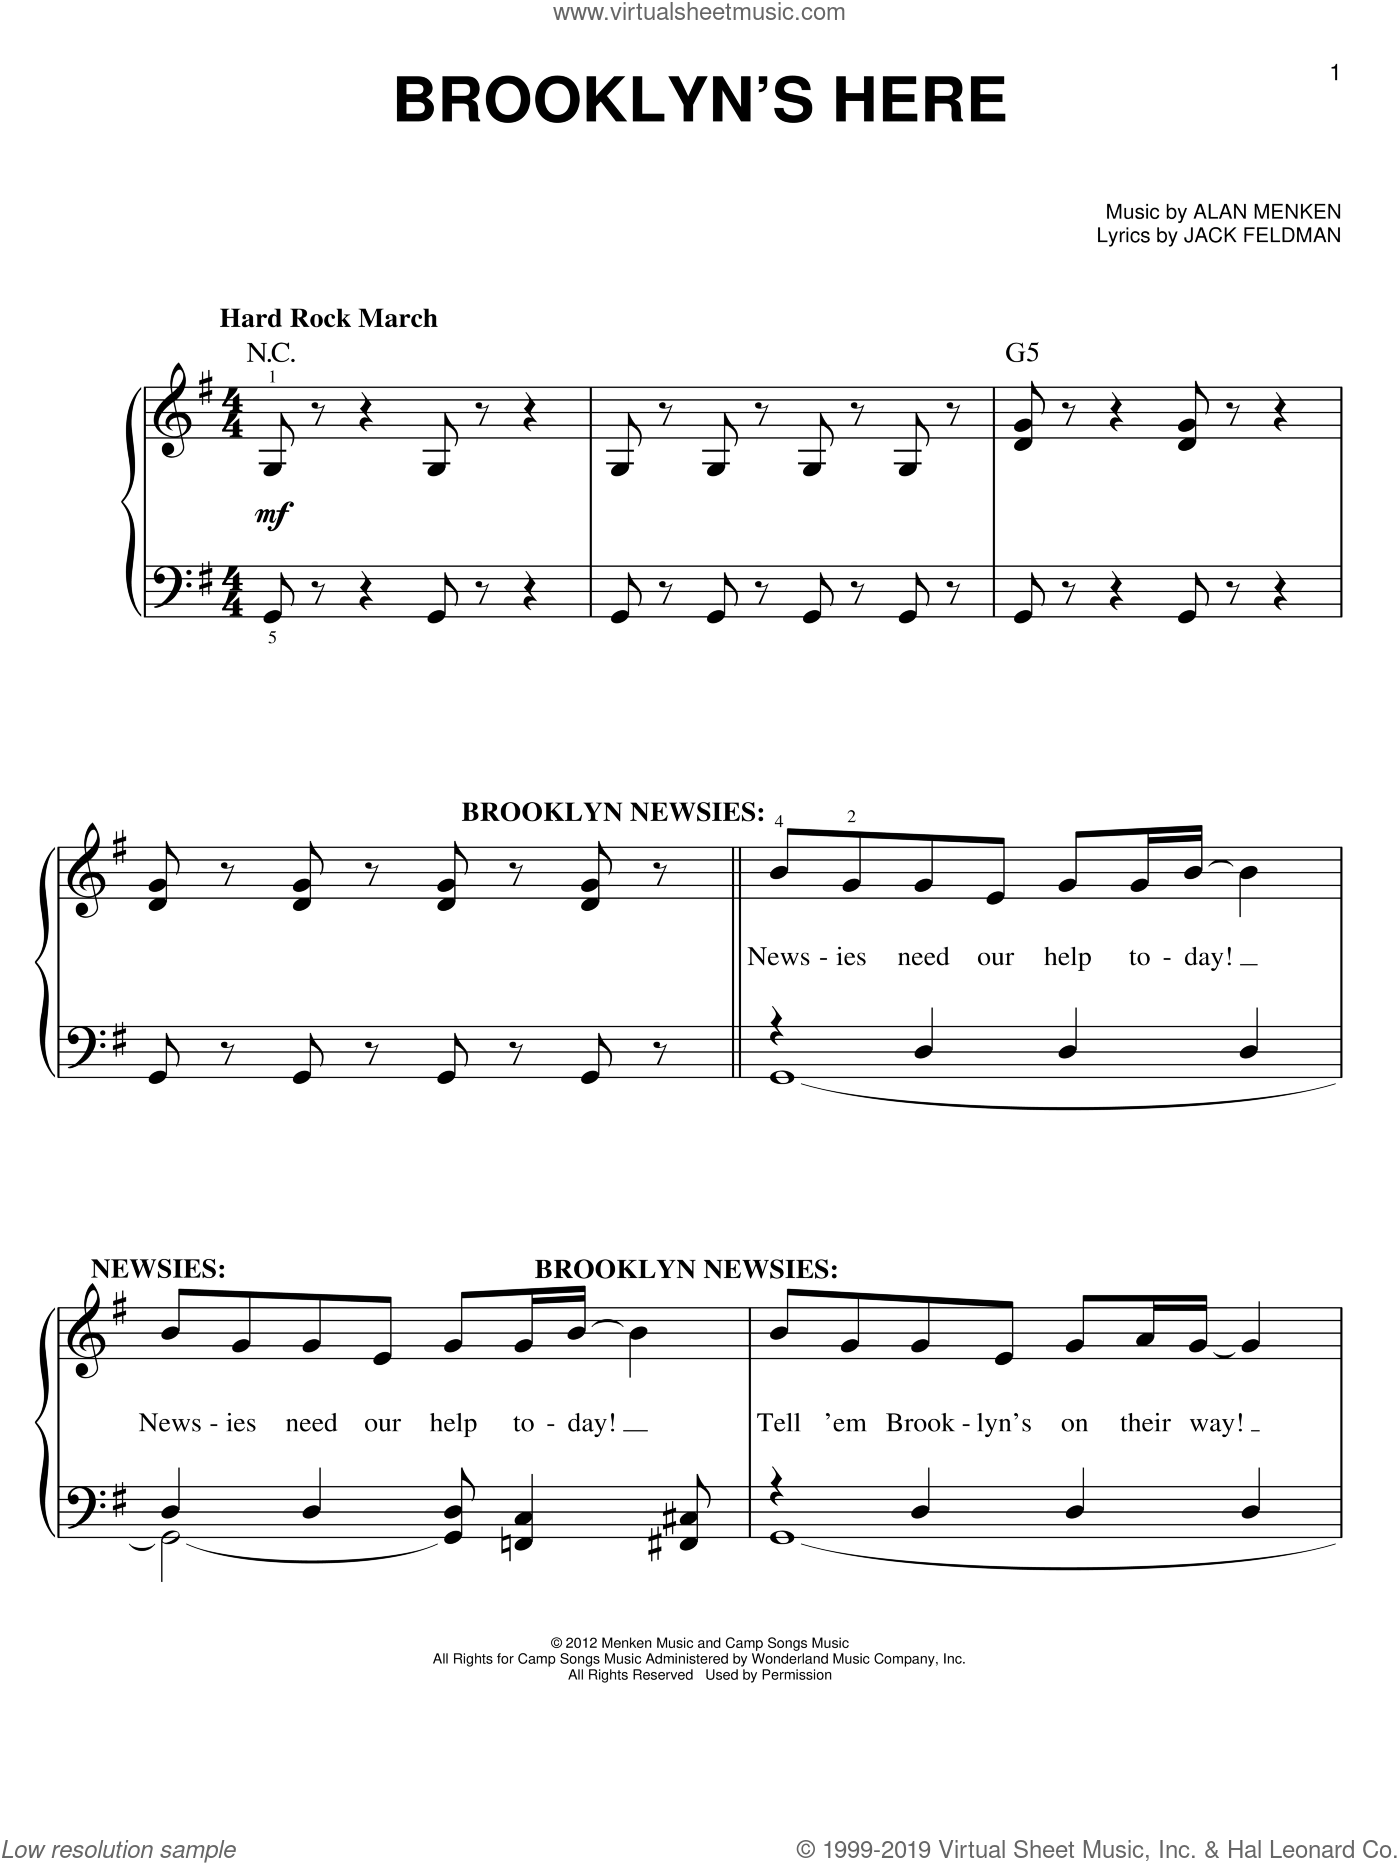 Brooklyn's Here sheet music for piano solo (chords) by Jack Feldman